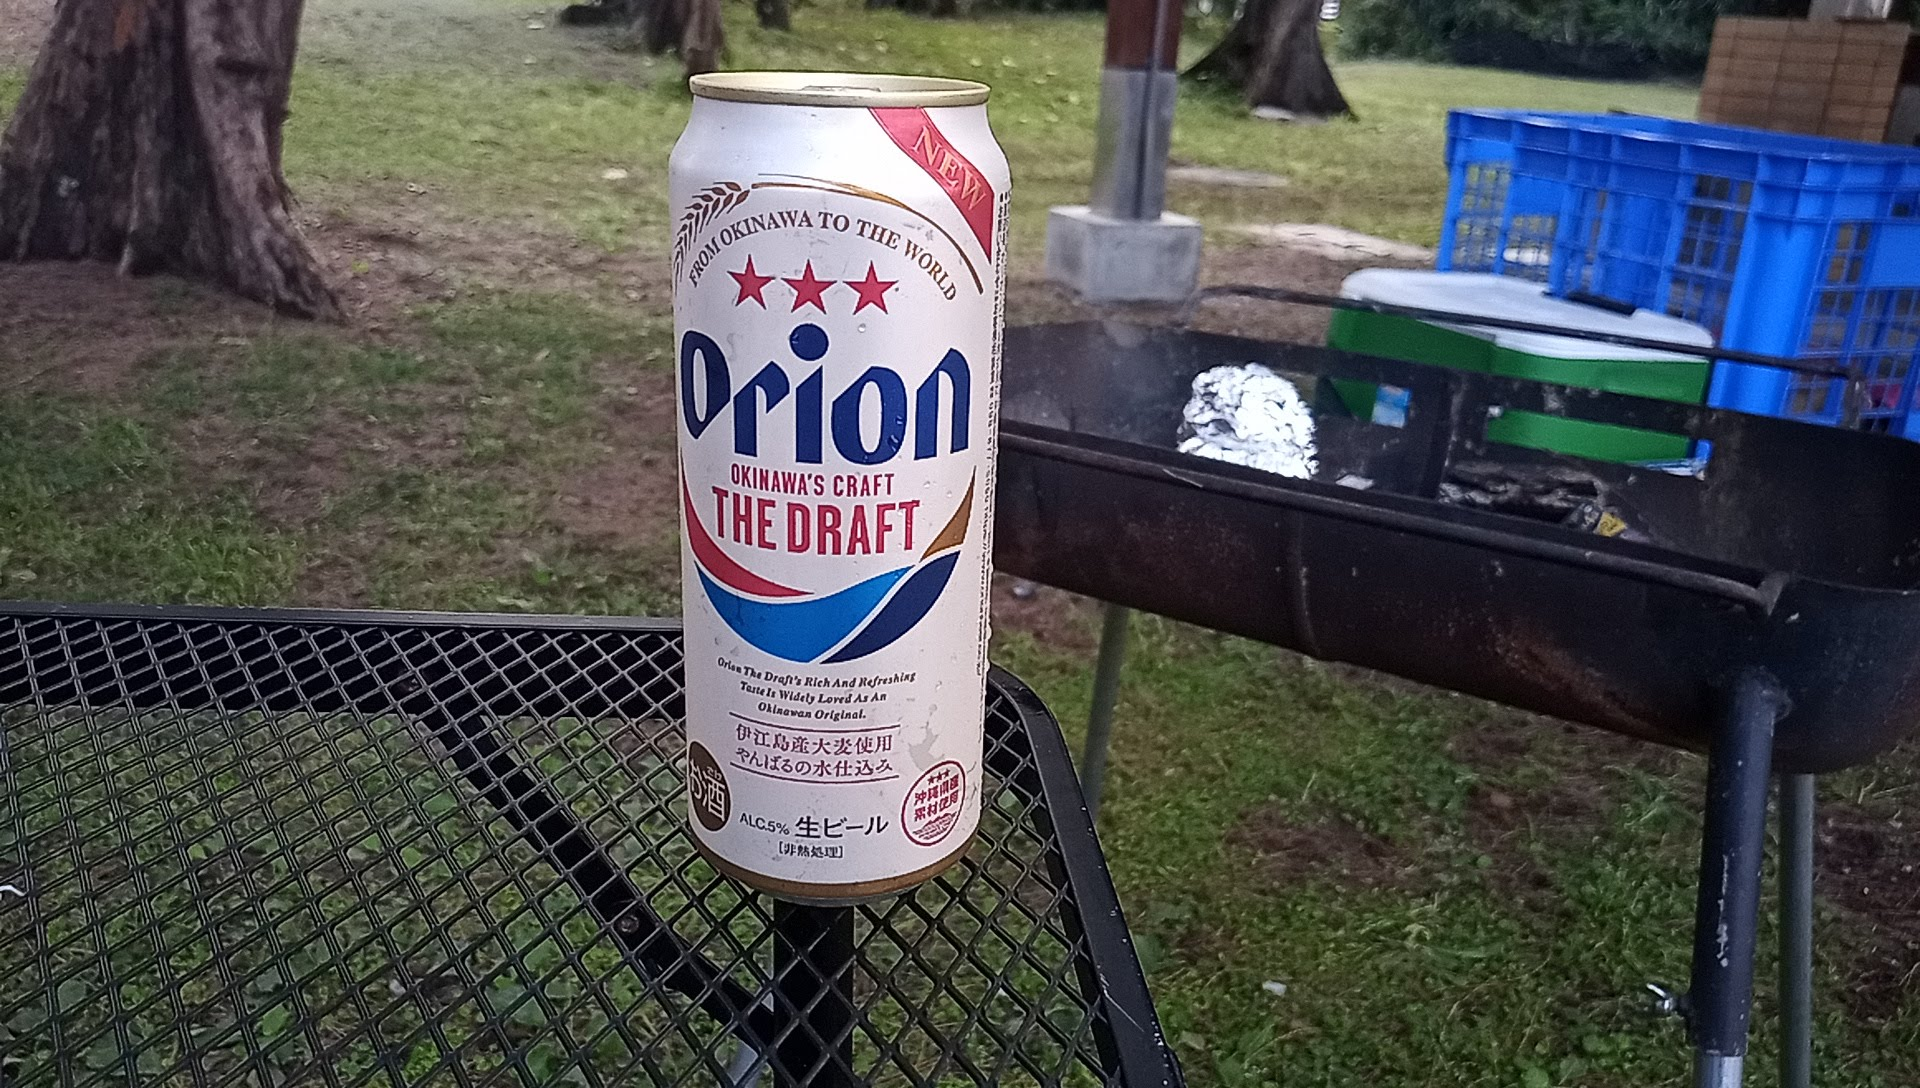 First, a toast with Orion beer.